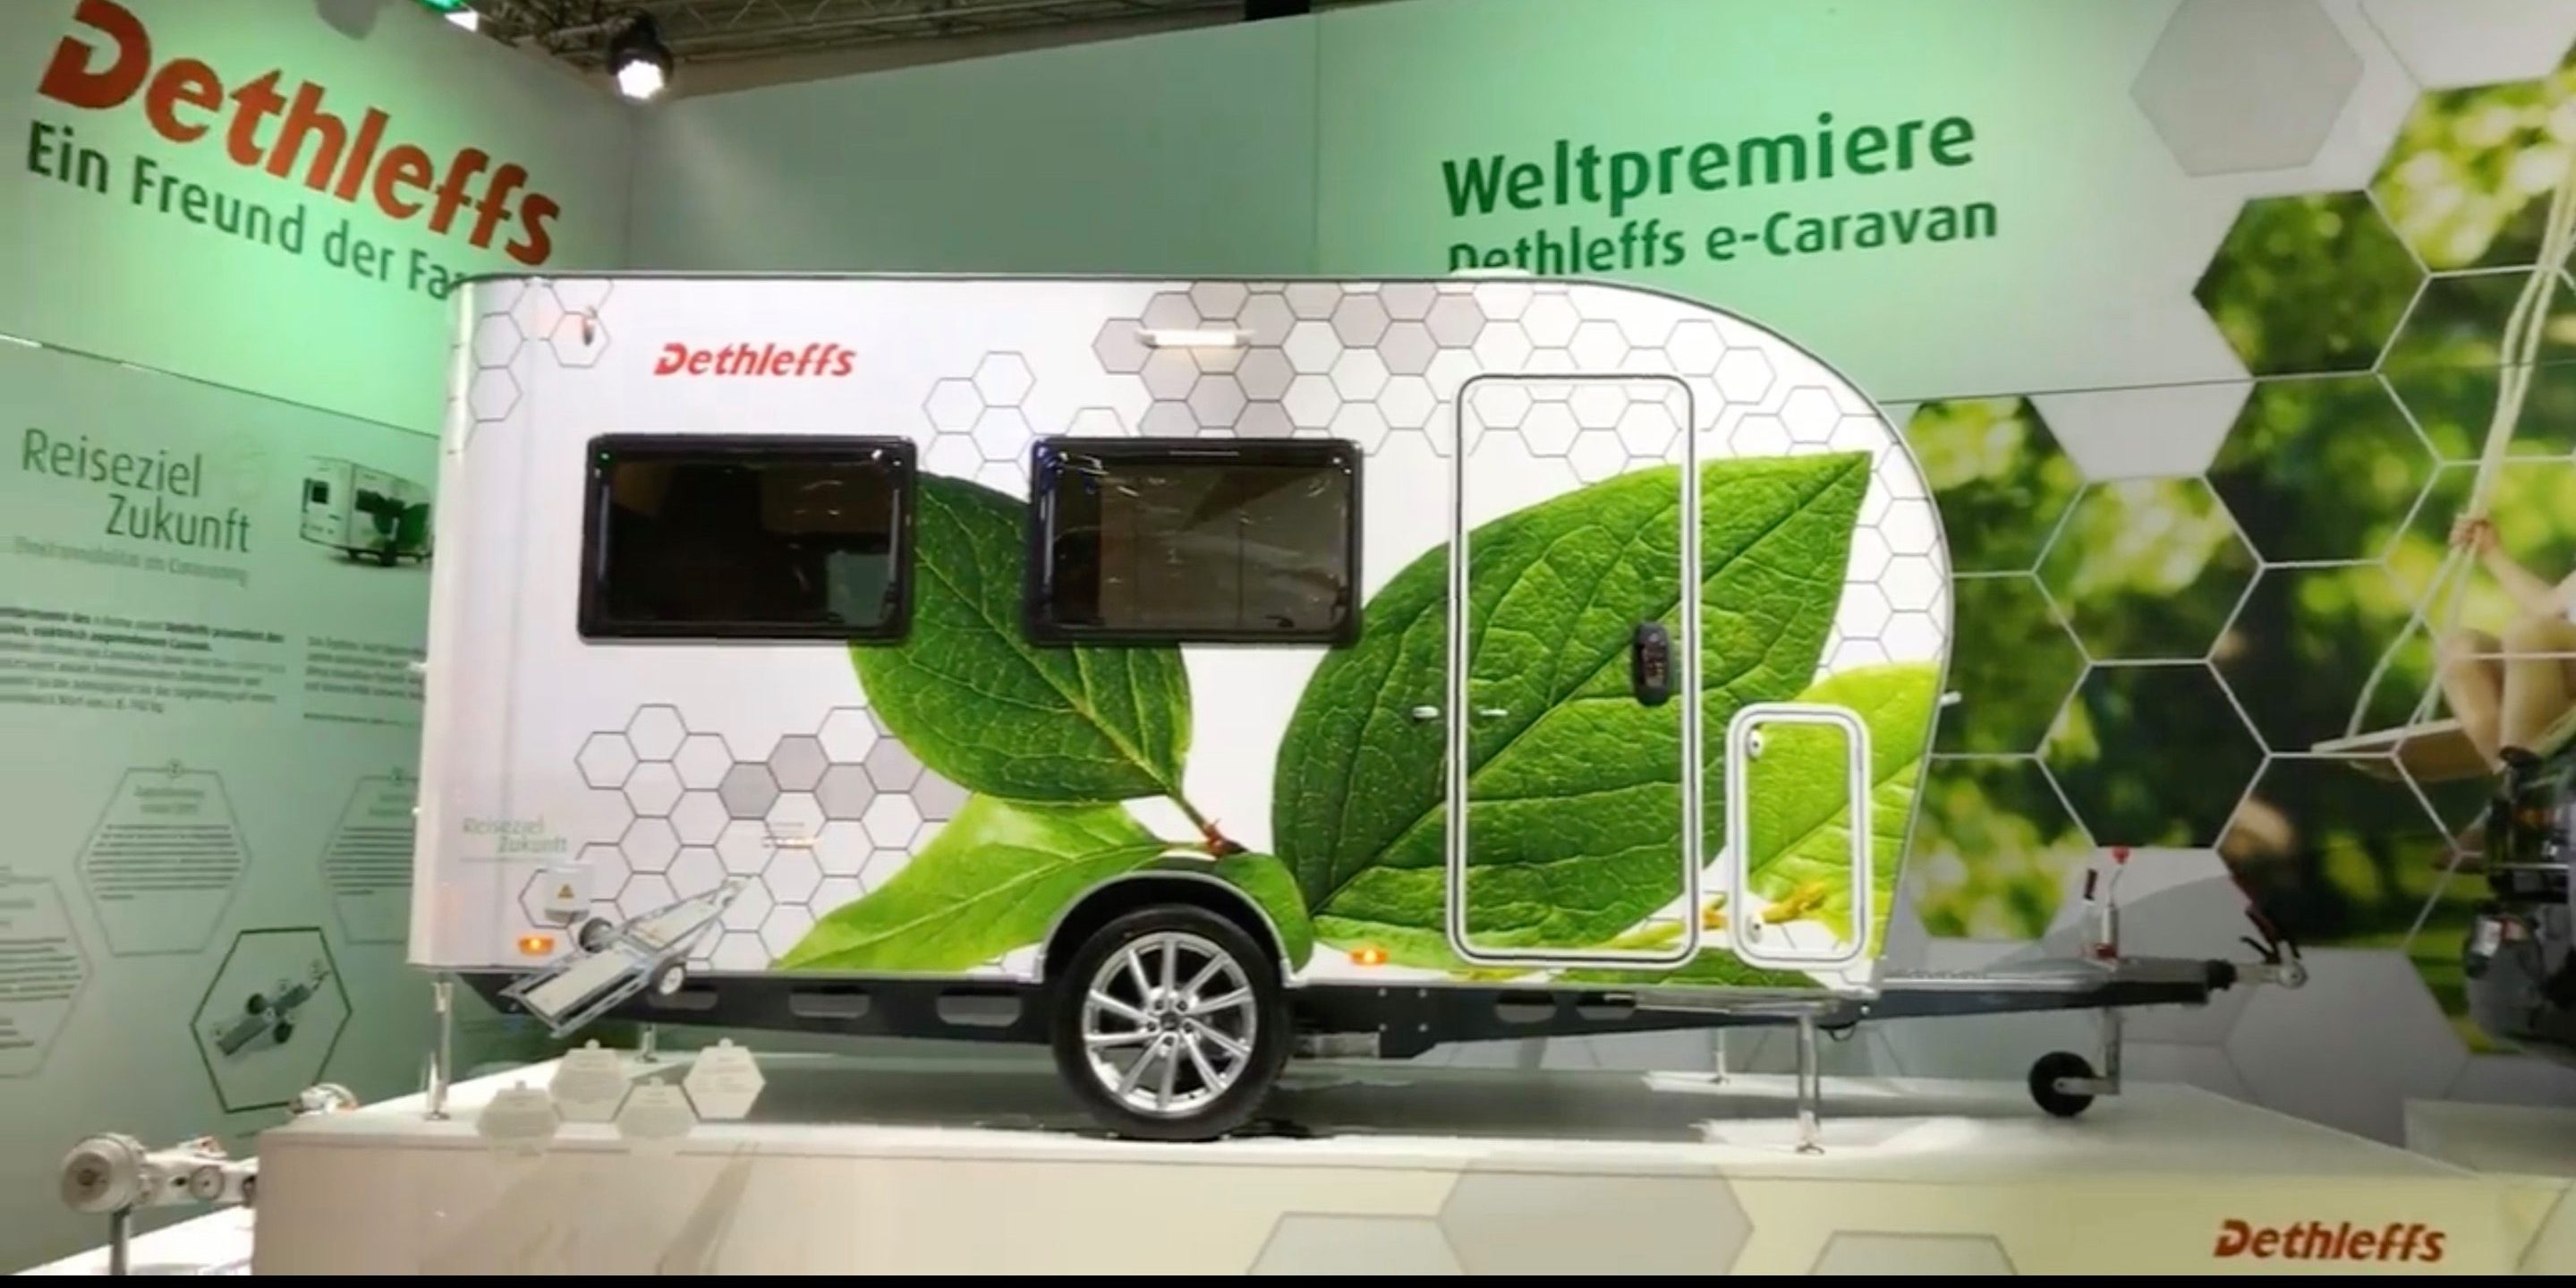 This new camper for electric cars has its own battery pack, electric motors, and solar panels